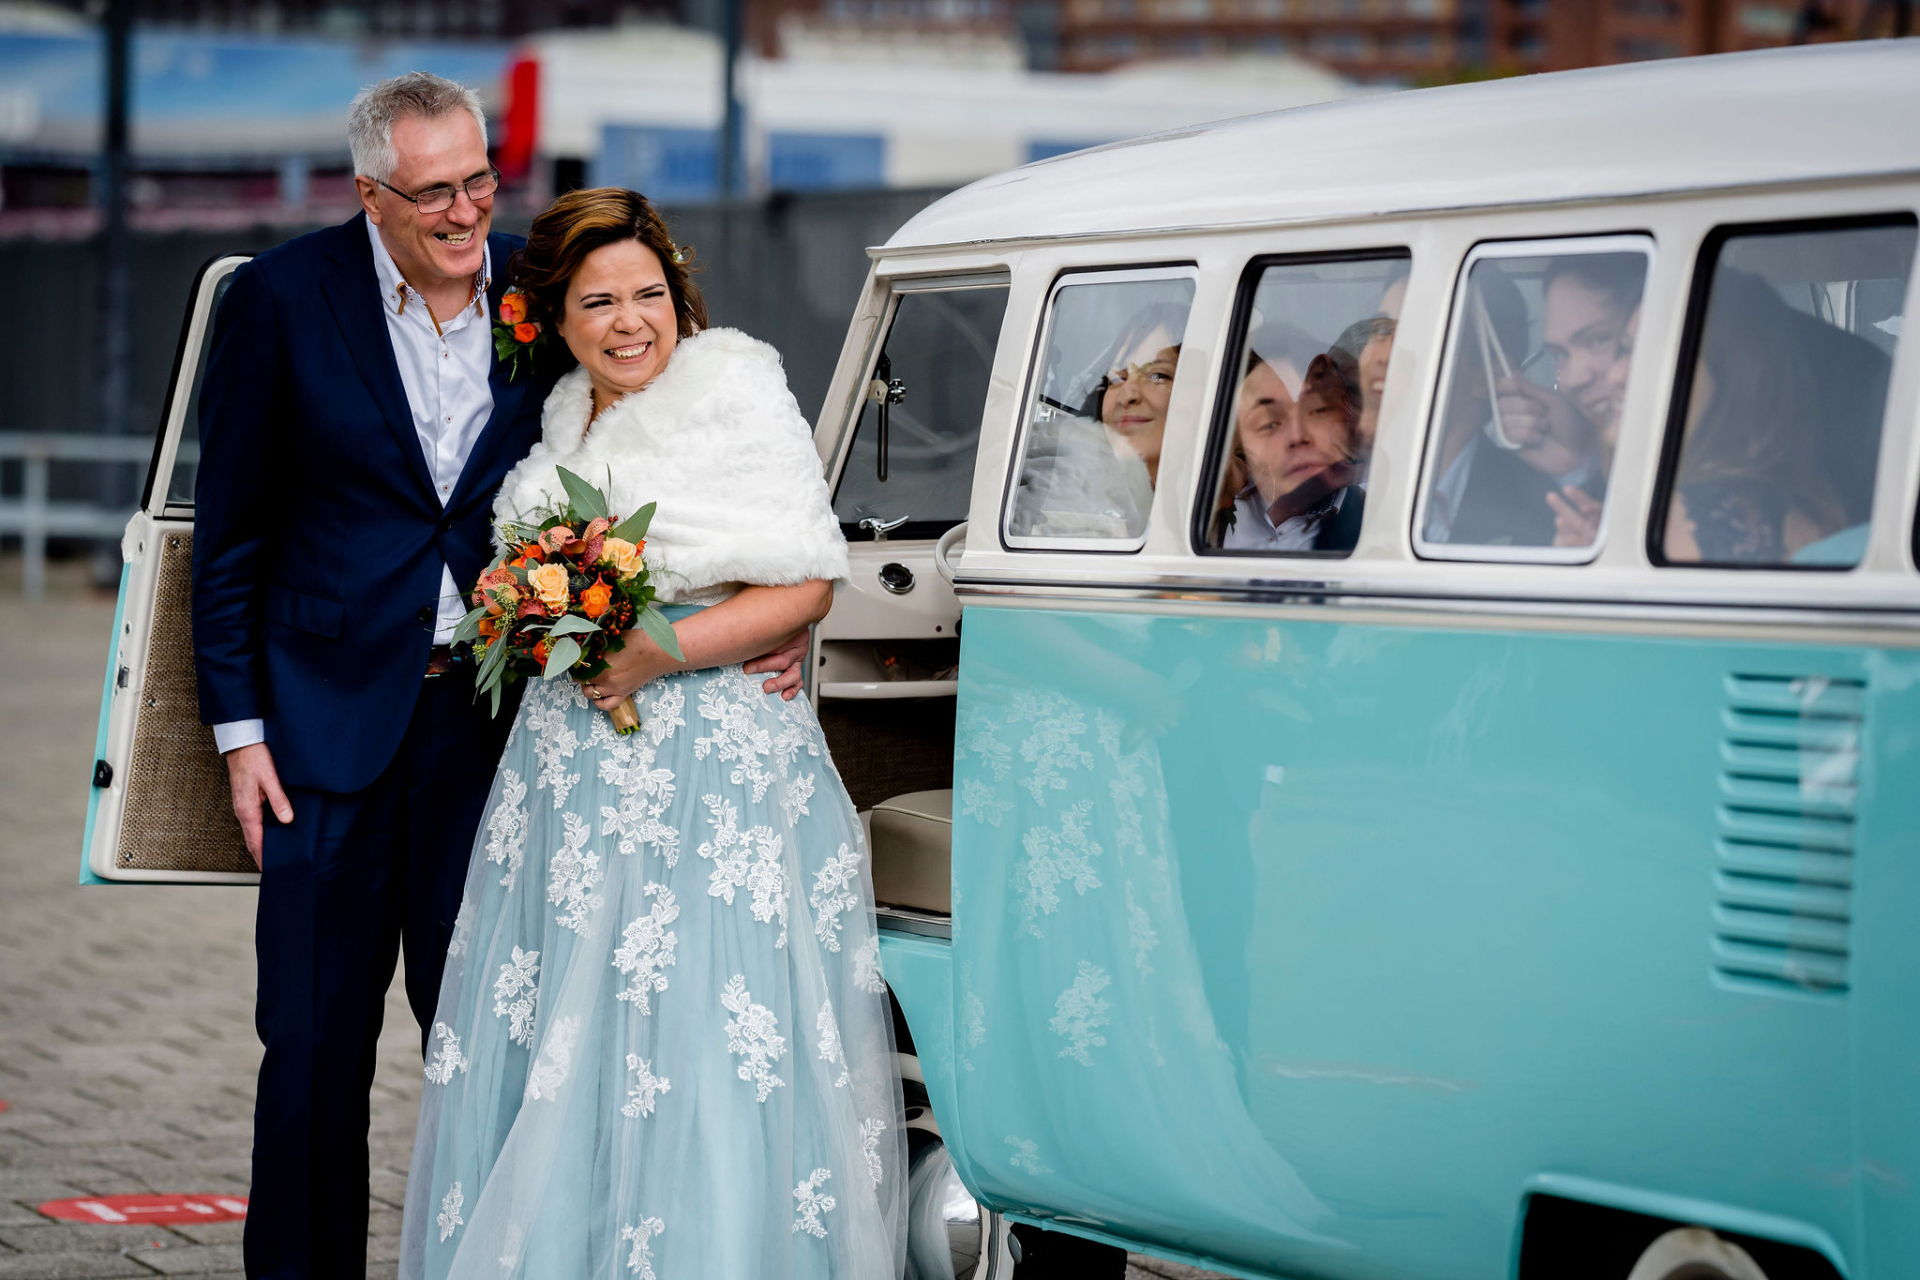 Best Wedding Photography for Rotterdam, NL | The bride and groom smile as they arrive for their ceremony in a vintage VW van